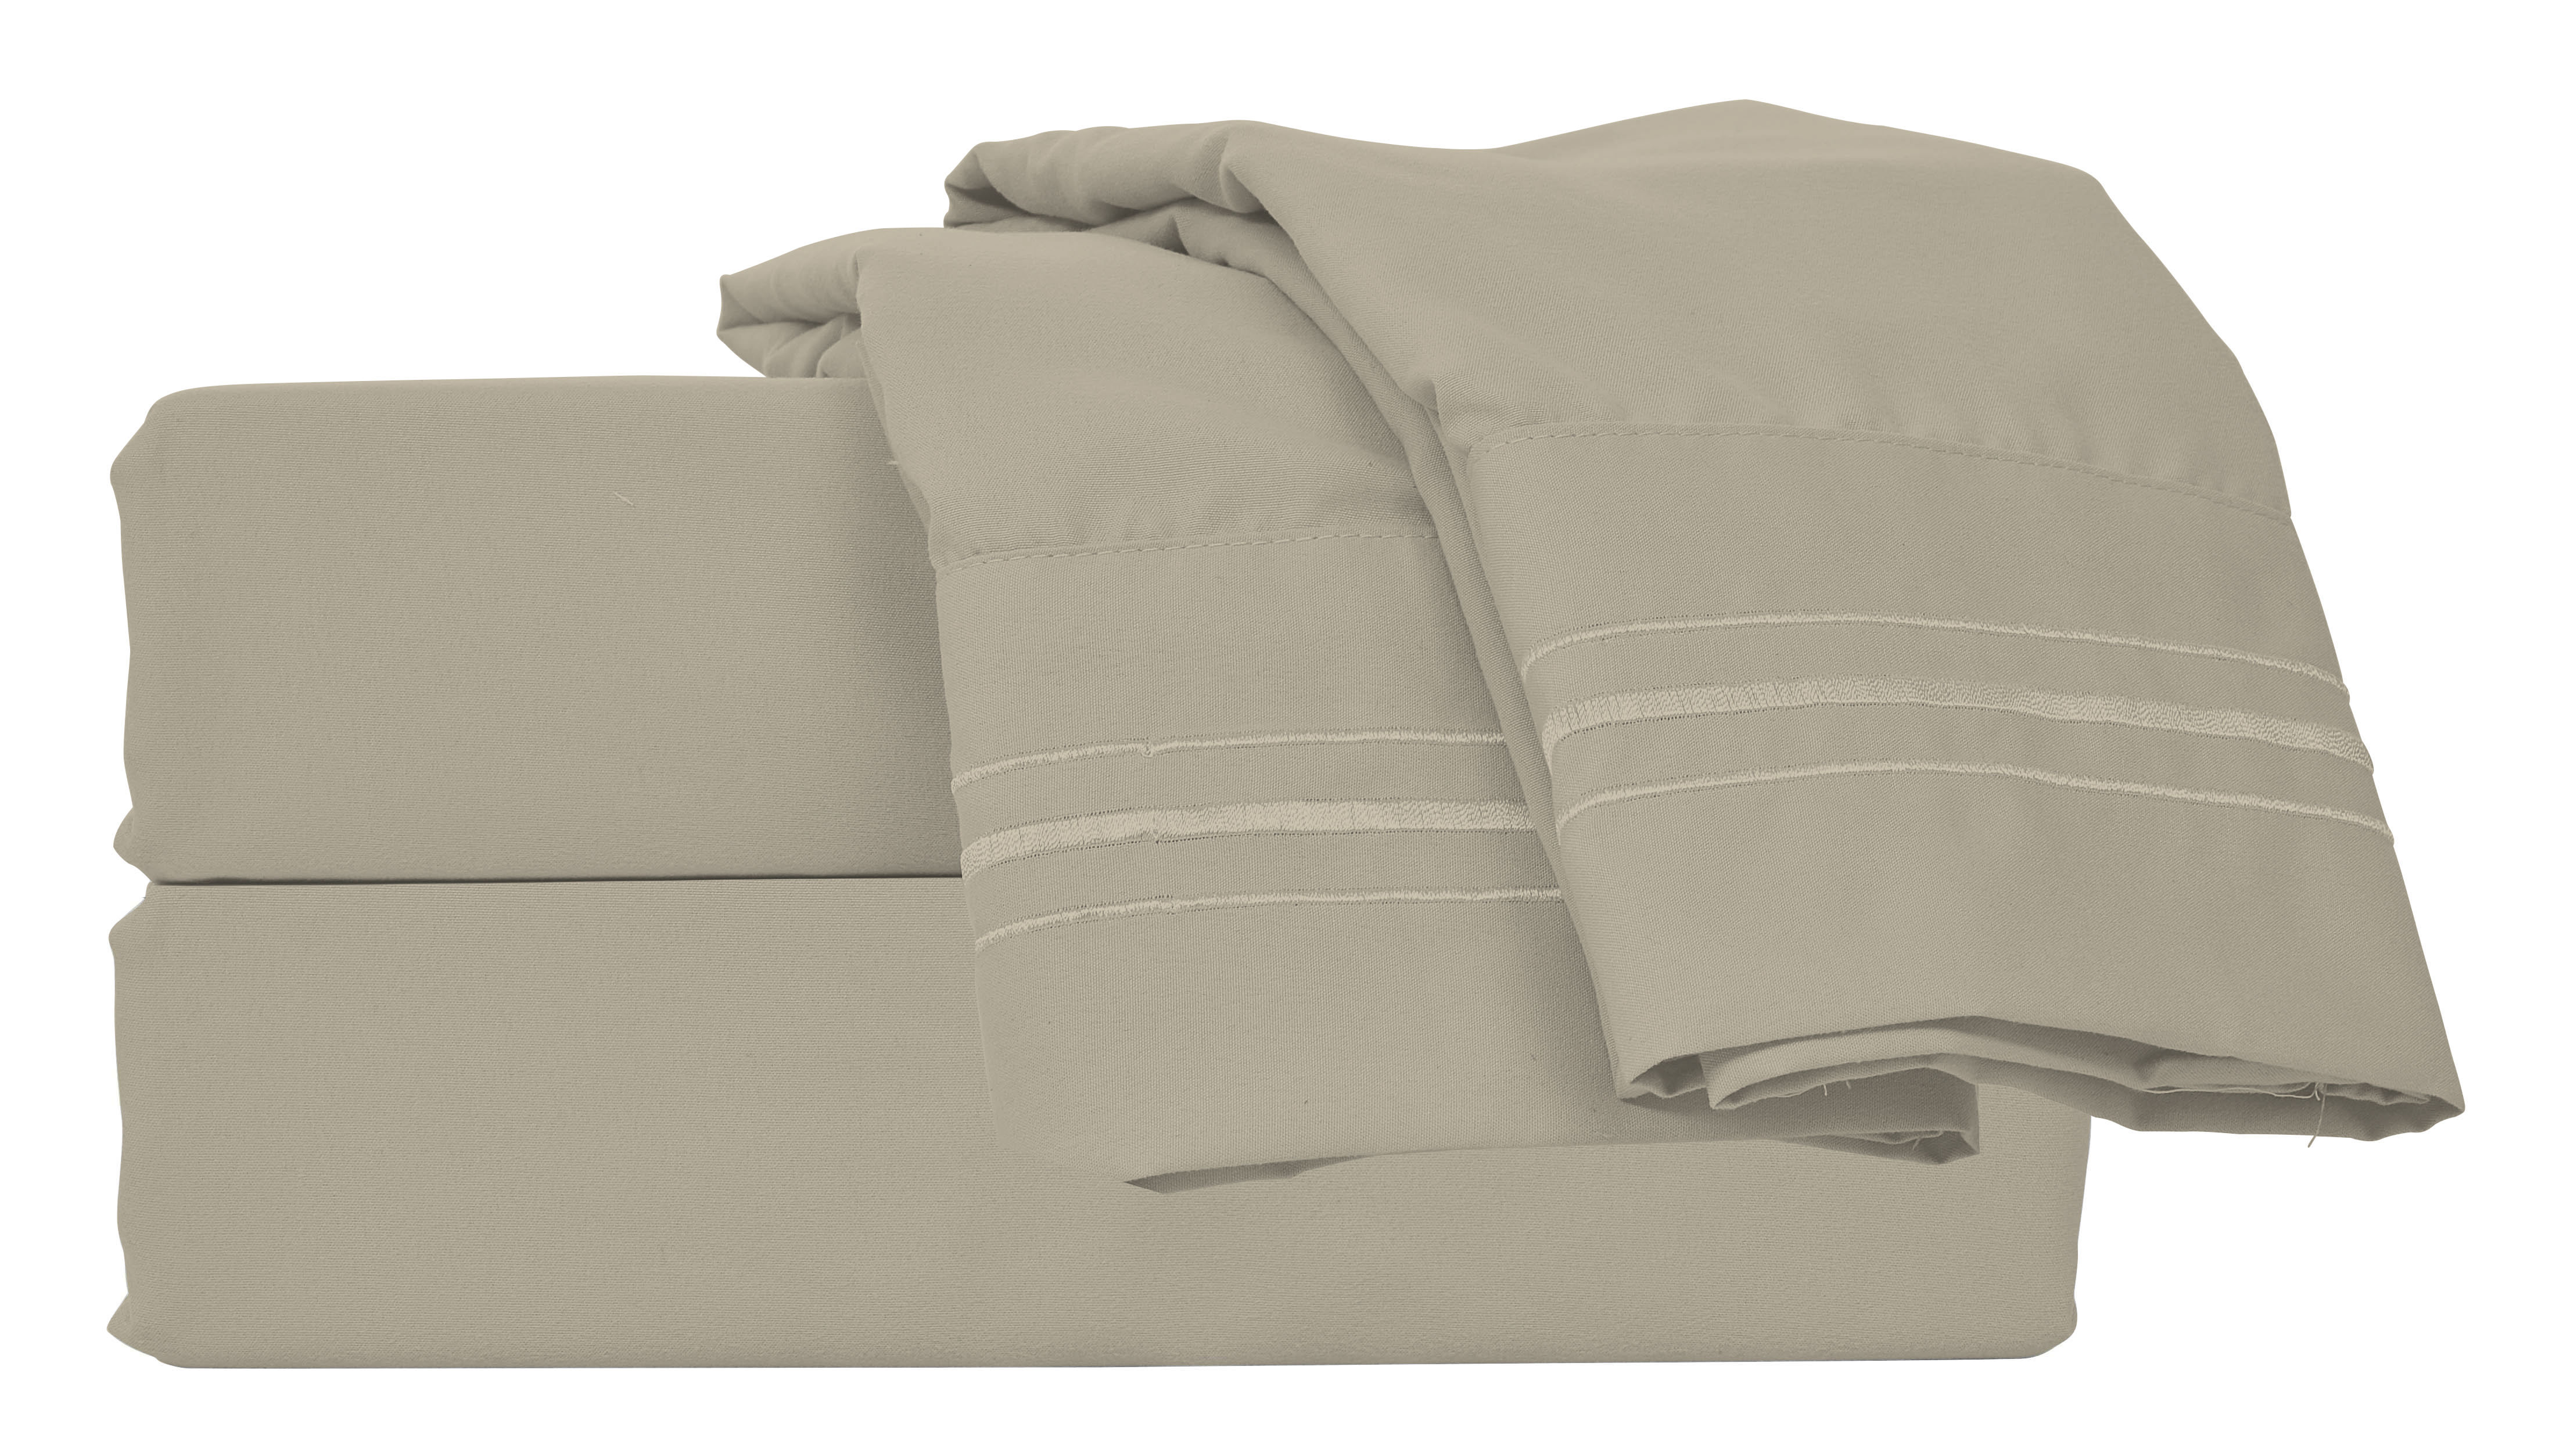 Bed Sheet Set Microfiber Easy Clean Soft Brush Twin Full